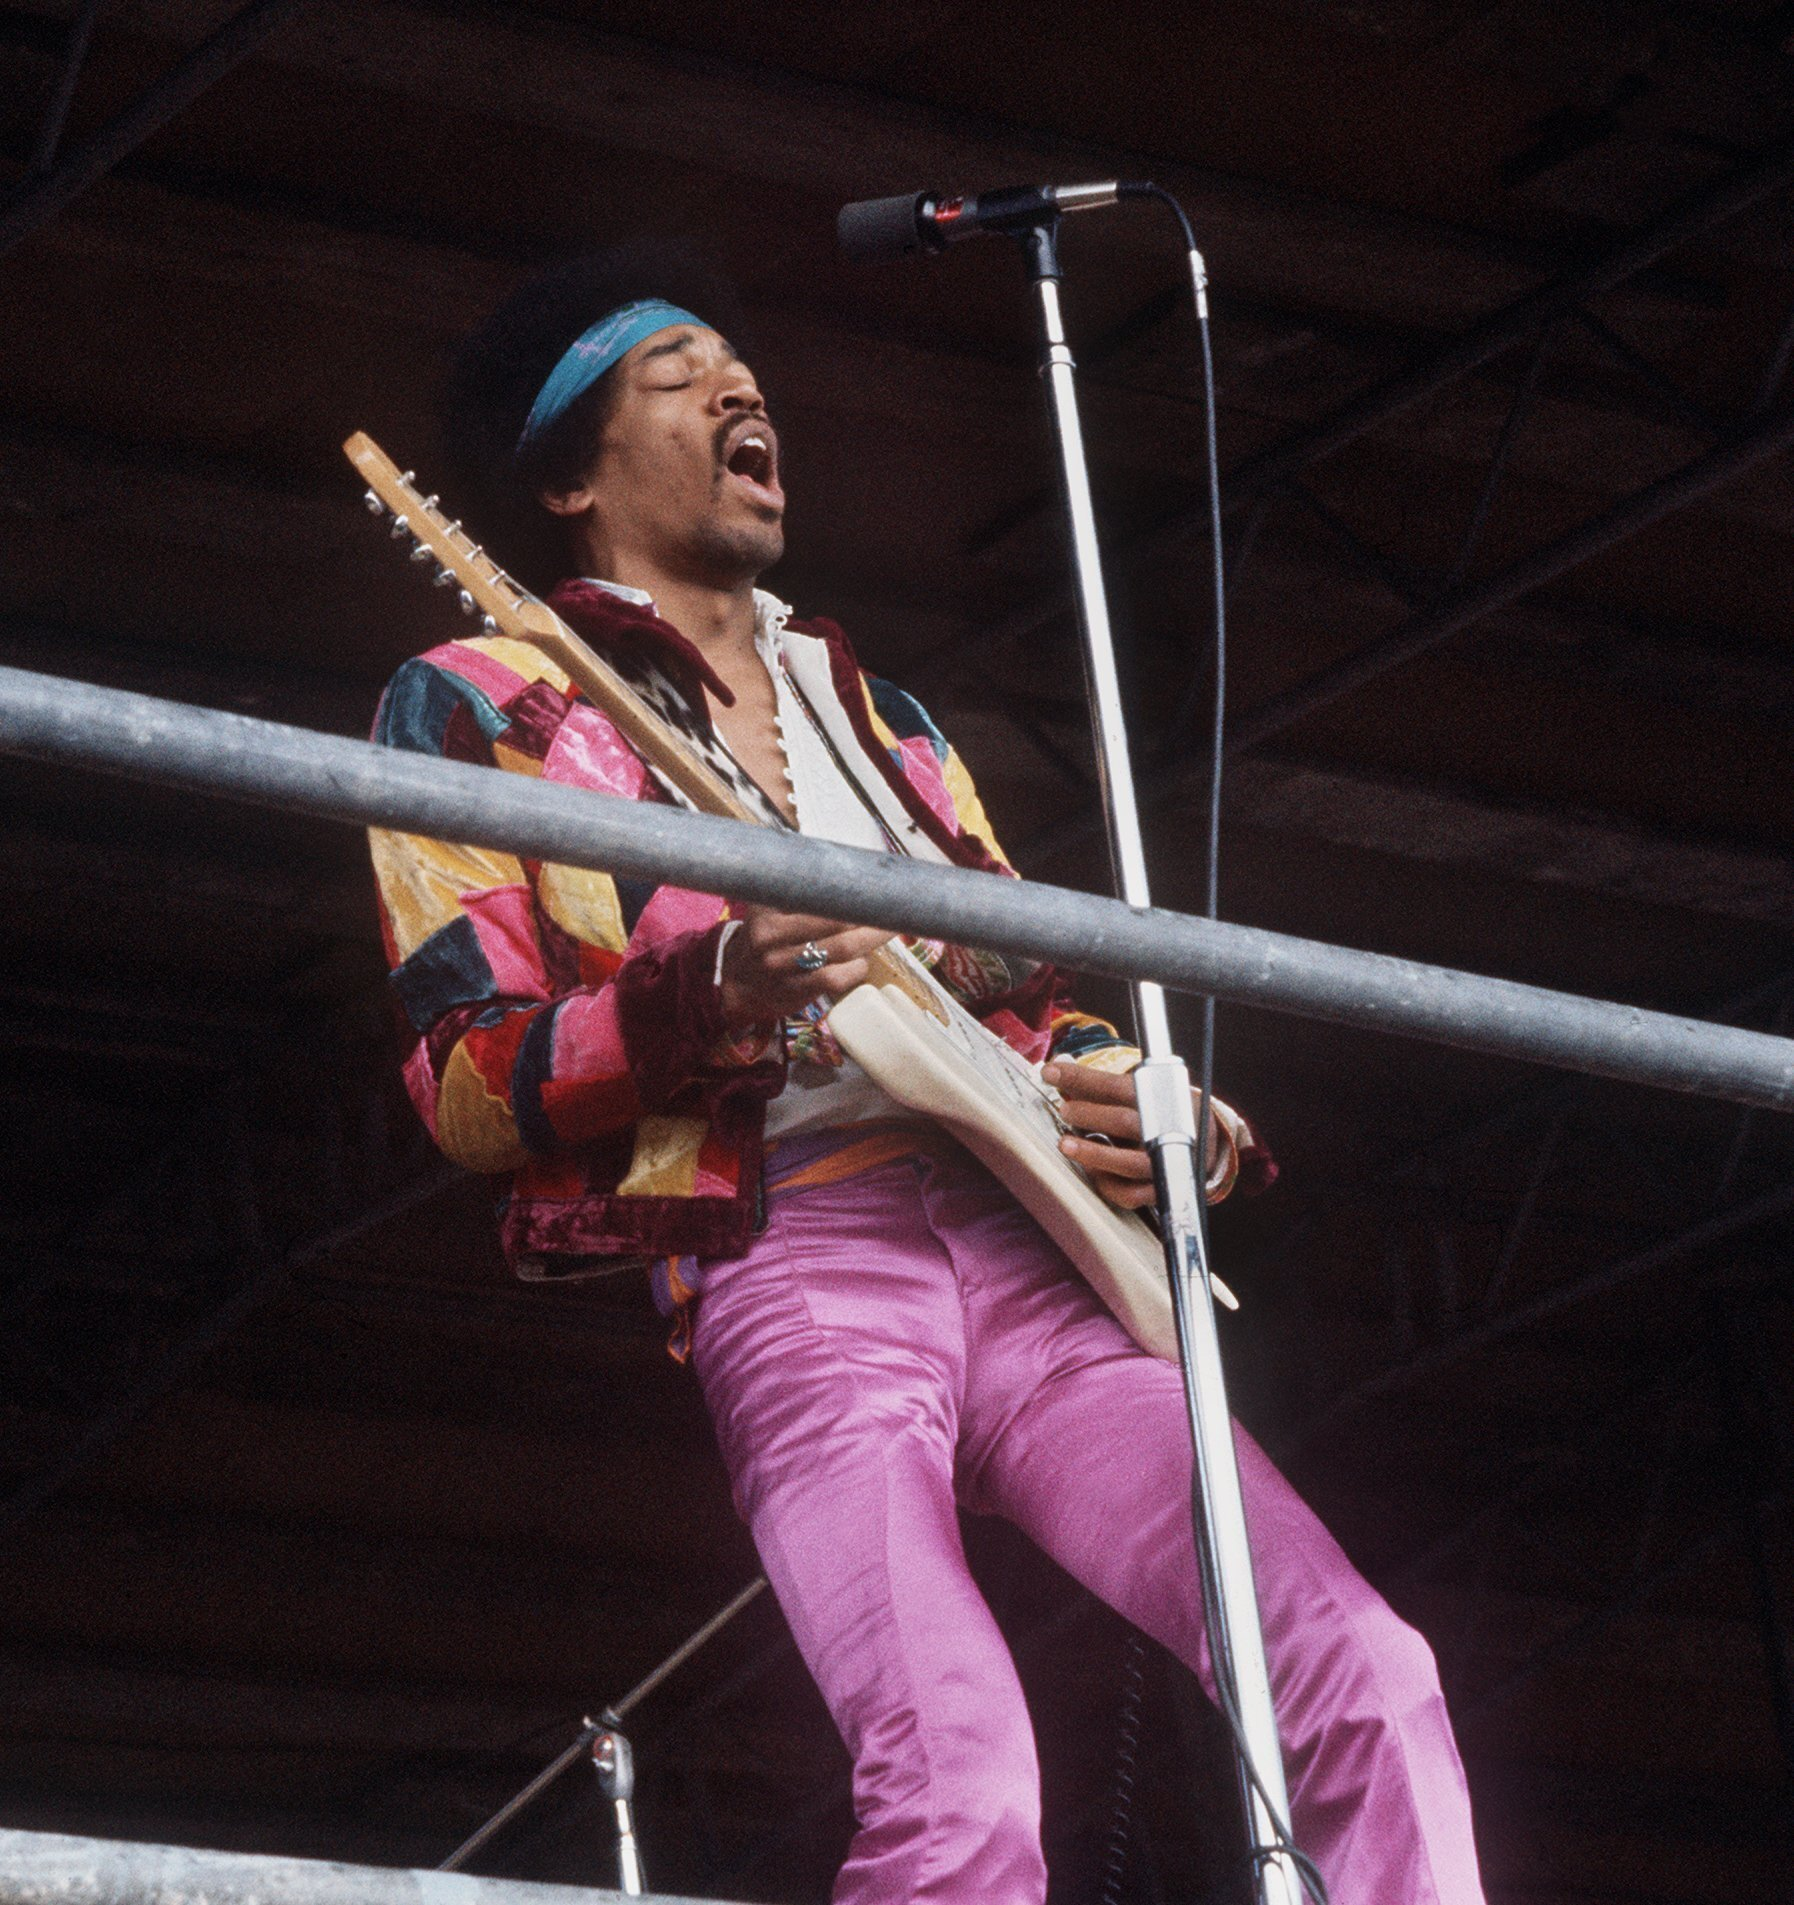 US rock singer and guitarist Jimi Hendrix ('Hey Joe', 'Purple Haze') pictured during his concert on the island Fehmarn in the Baltic Sea, West Germany, 1970.   usage worldwide Photo by: Dieter Klar/picture-alliance/dpa/AP Images